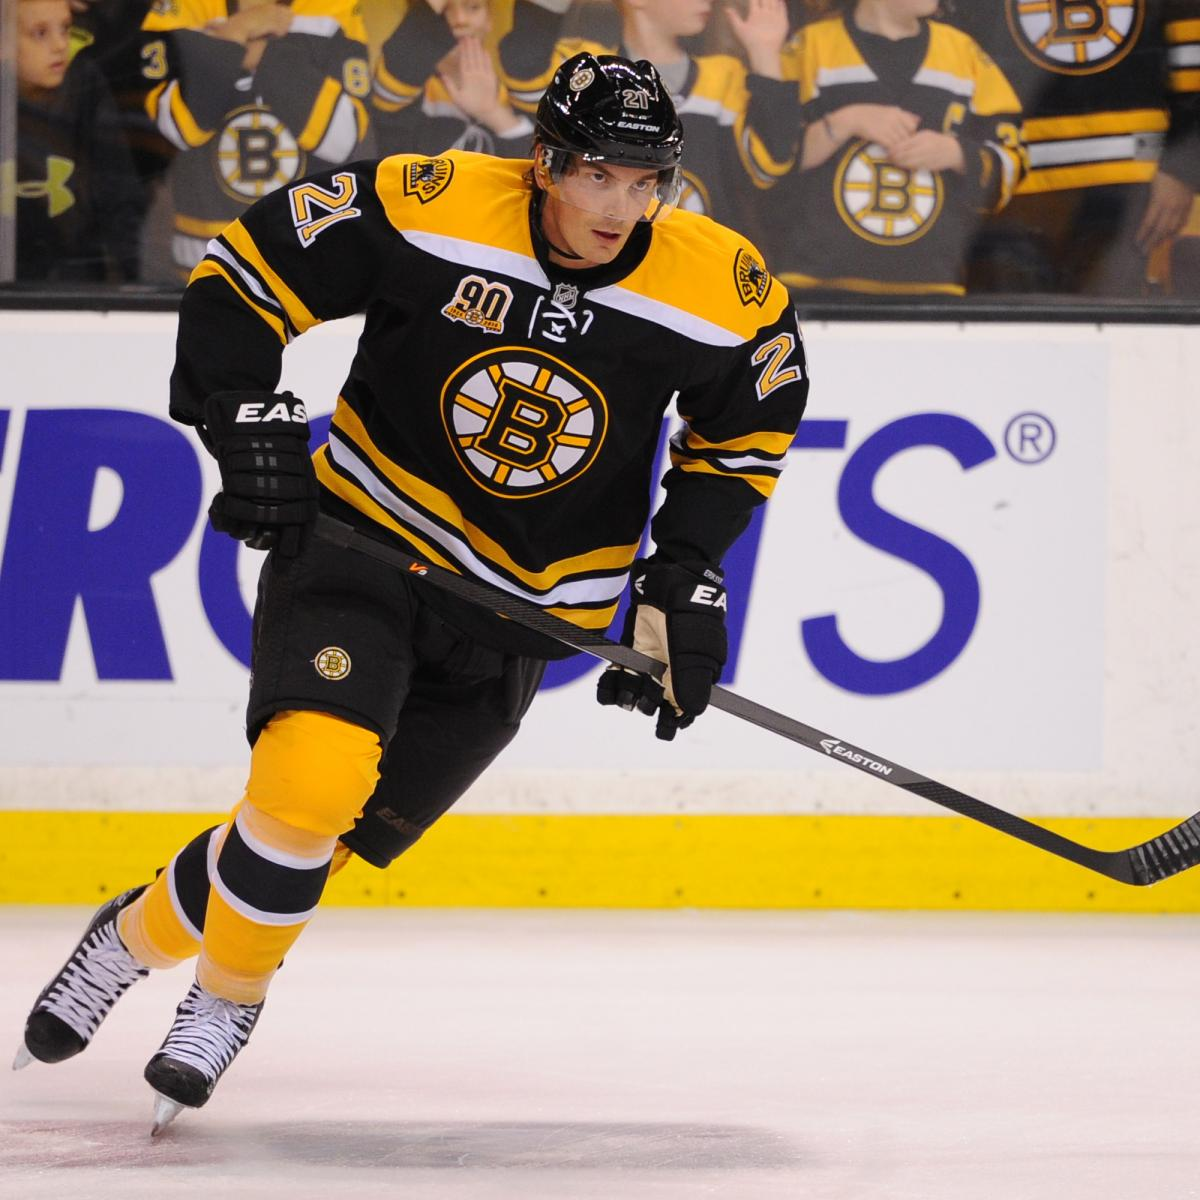 Way-Too-Early Grades For New Boston Bruins